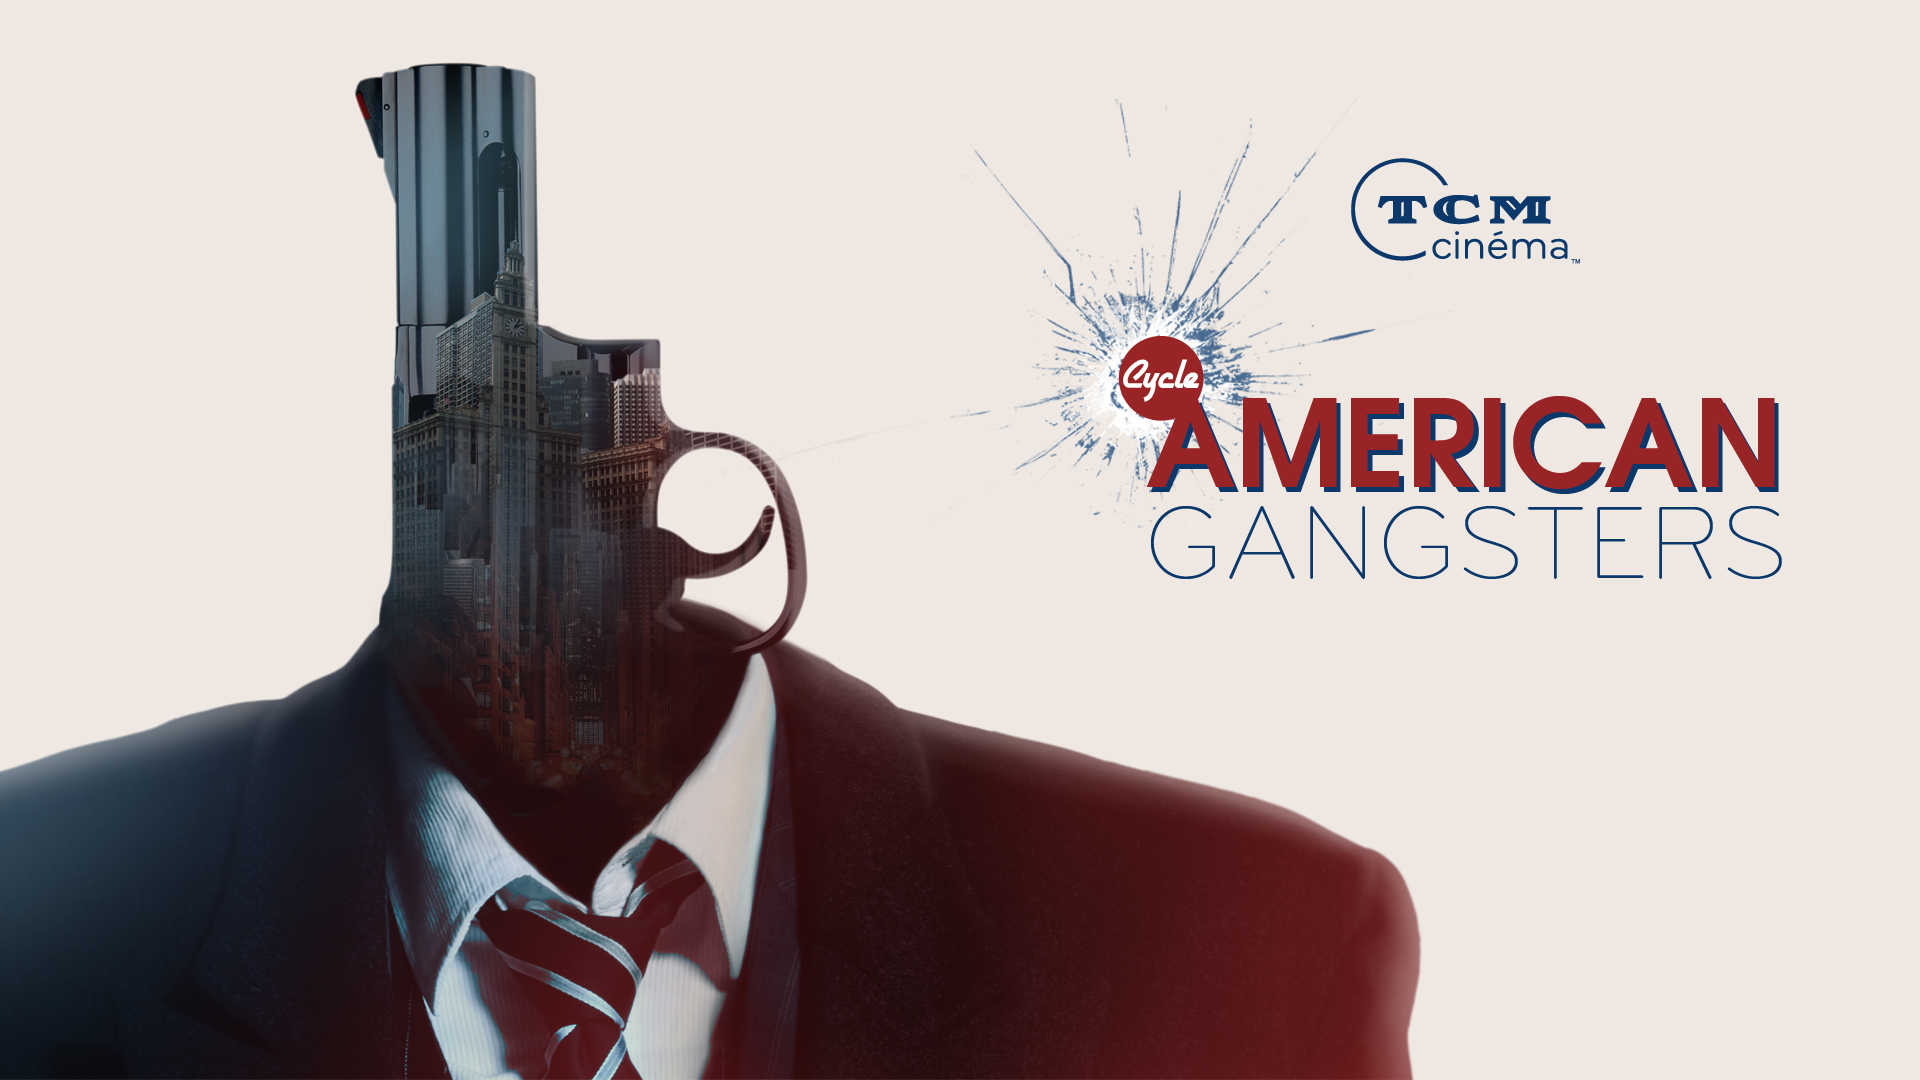 Cycle American Gangsters TCM Cinéma - Visuel - Go with the Blog